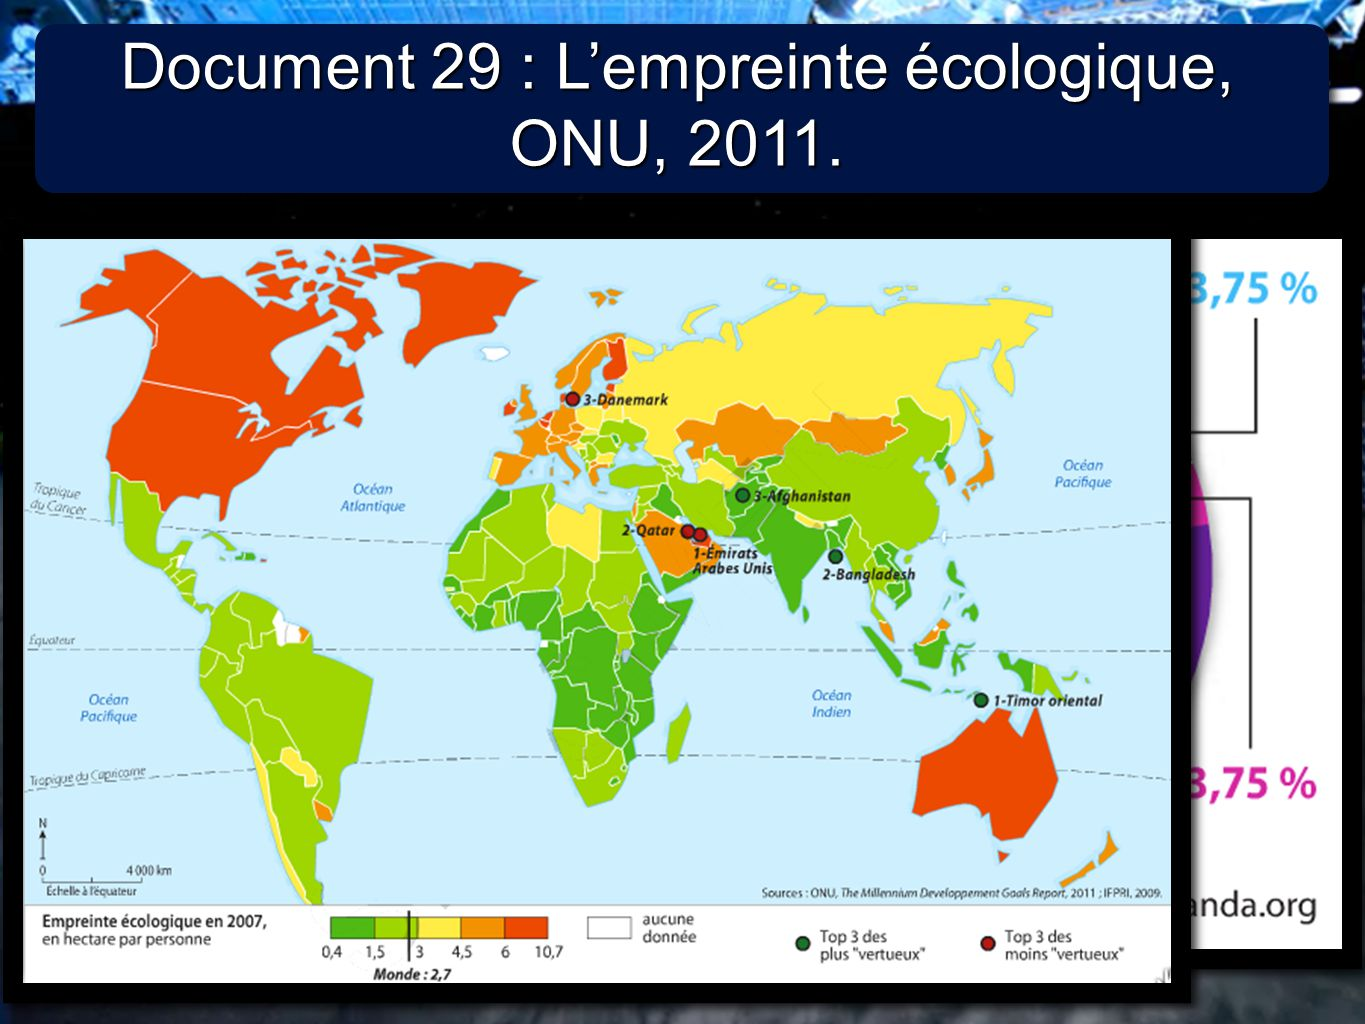 3 3 Document 29 : Lempreinte écologique, ONU, 2011.